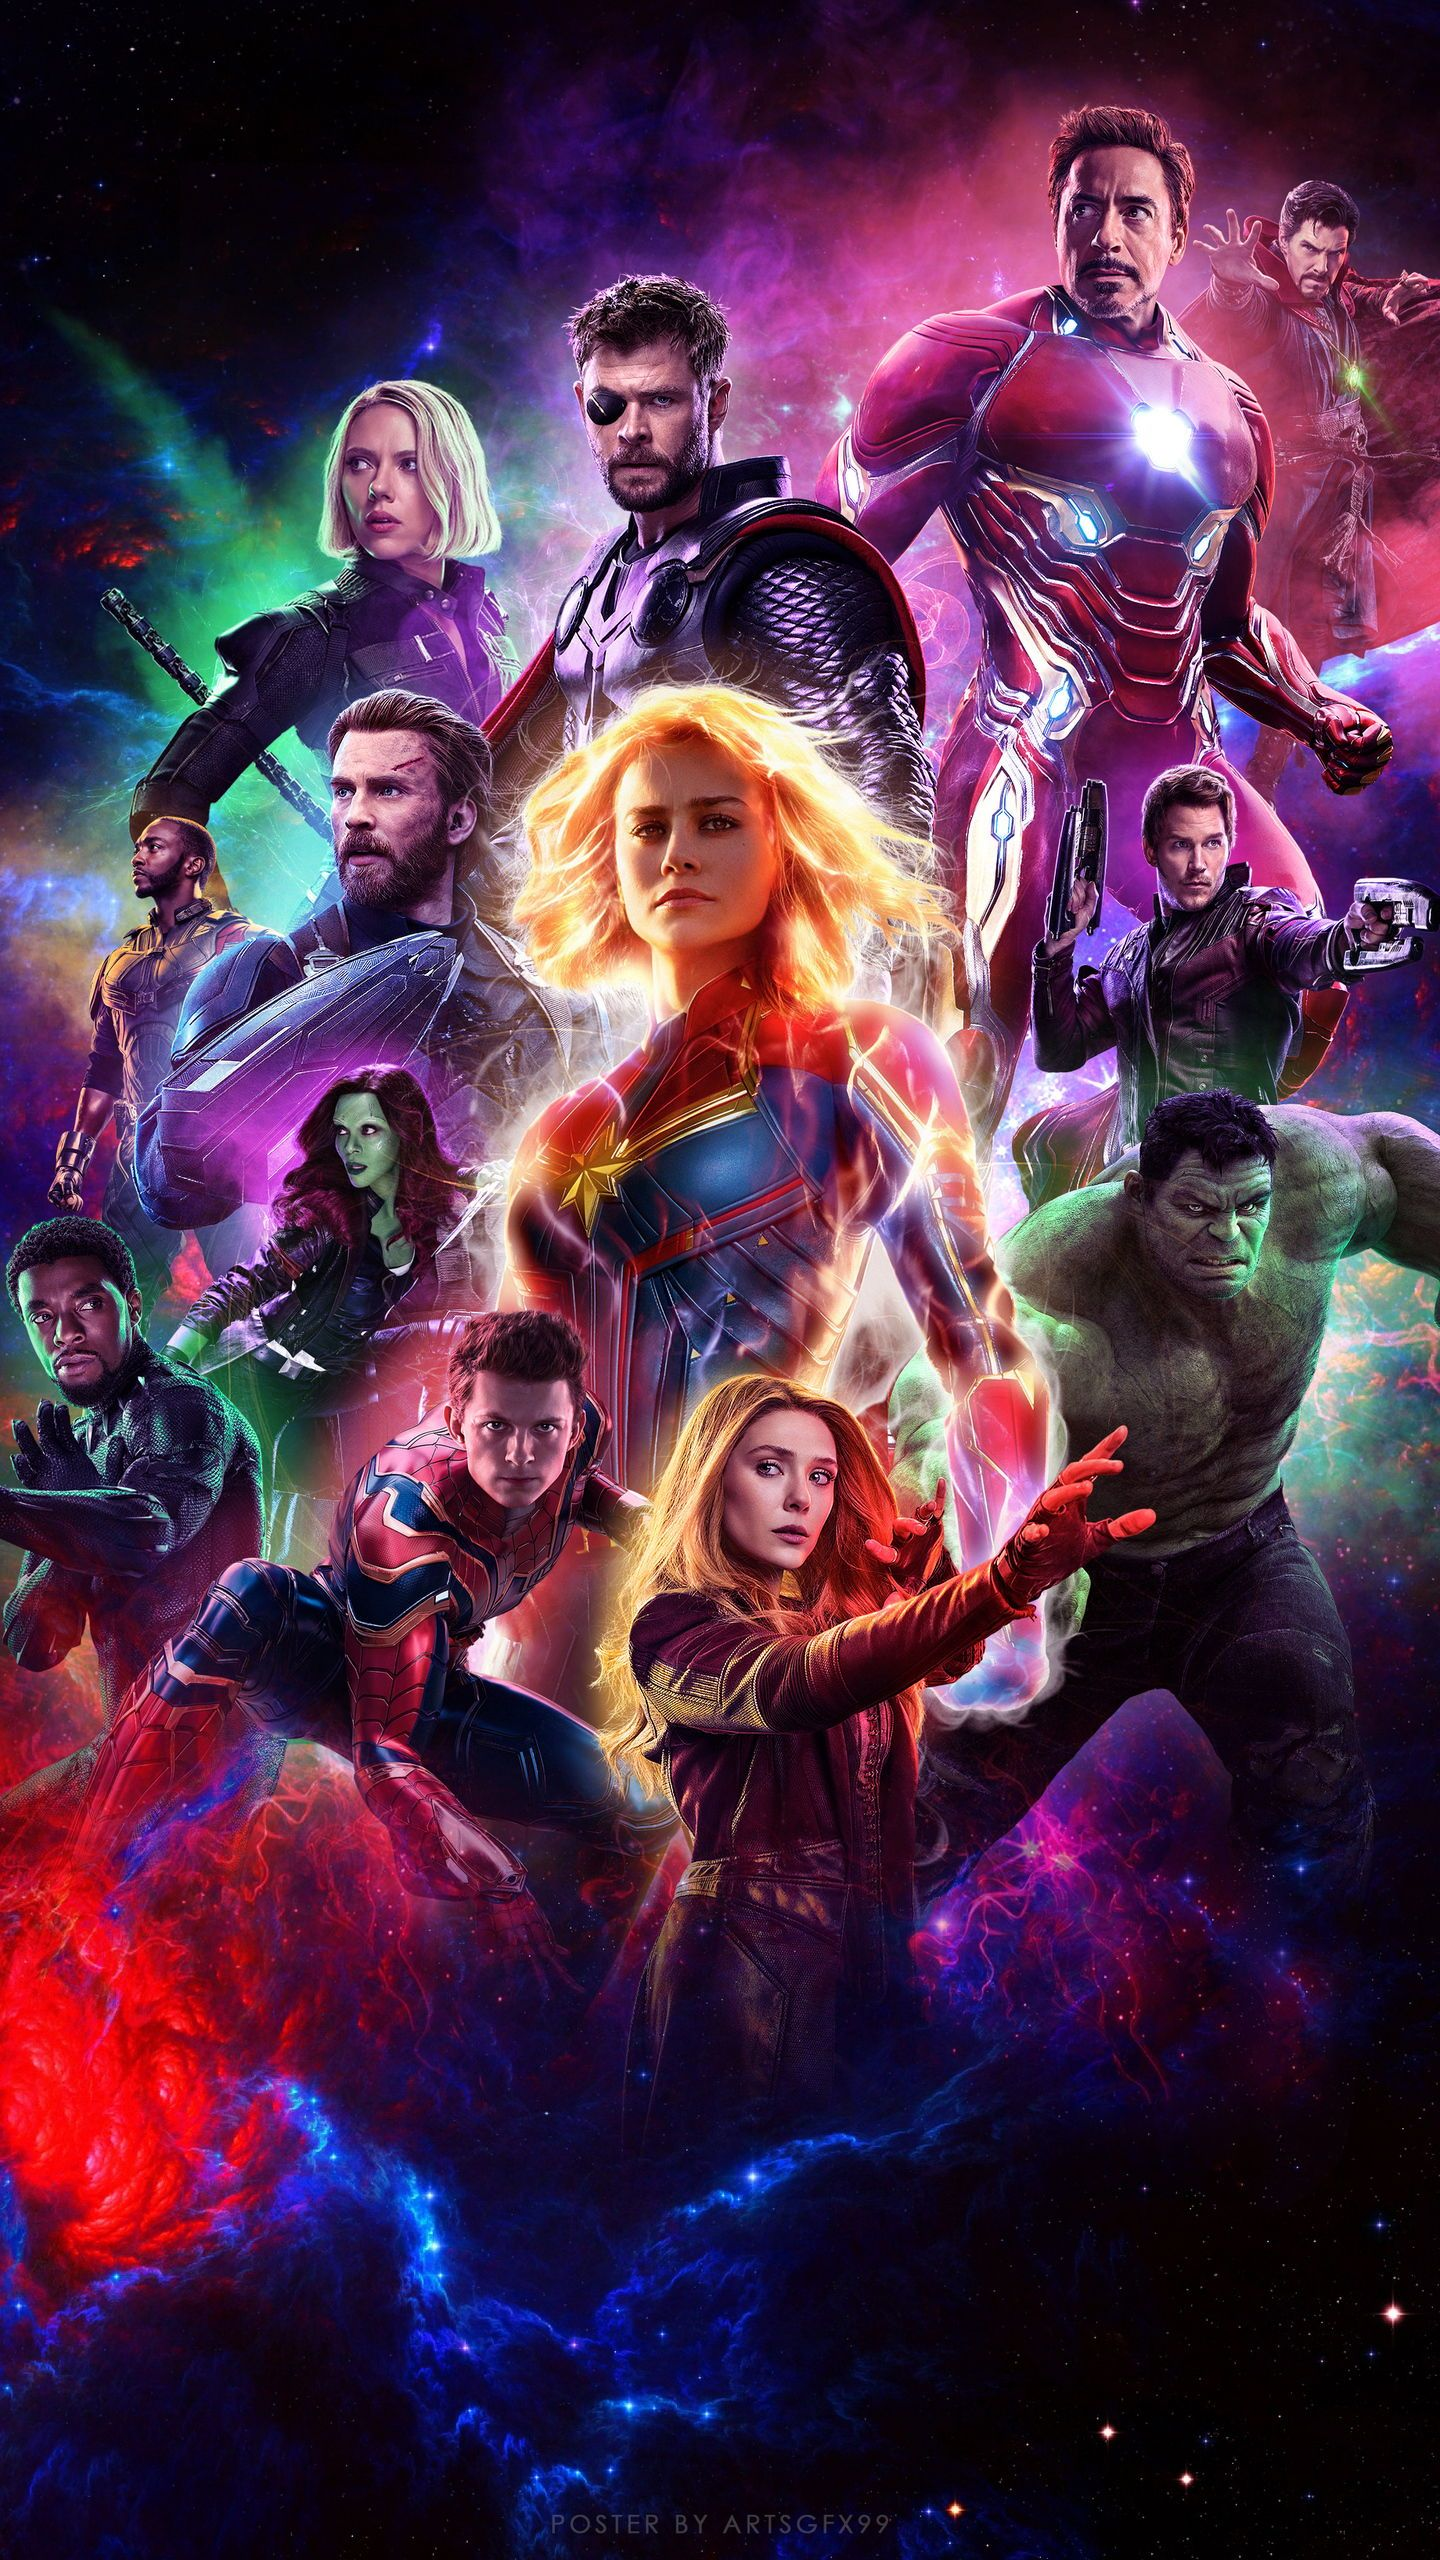 Download Hd Wallpapers Follow Wallpaper Hook To Download Avengers Avengers Endgame Marvel Cinematic Un Marvel Superheroes Marvel Posters Avengers Movies